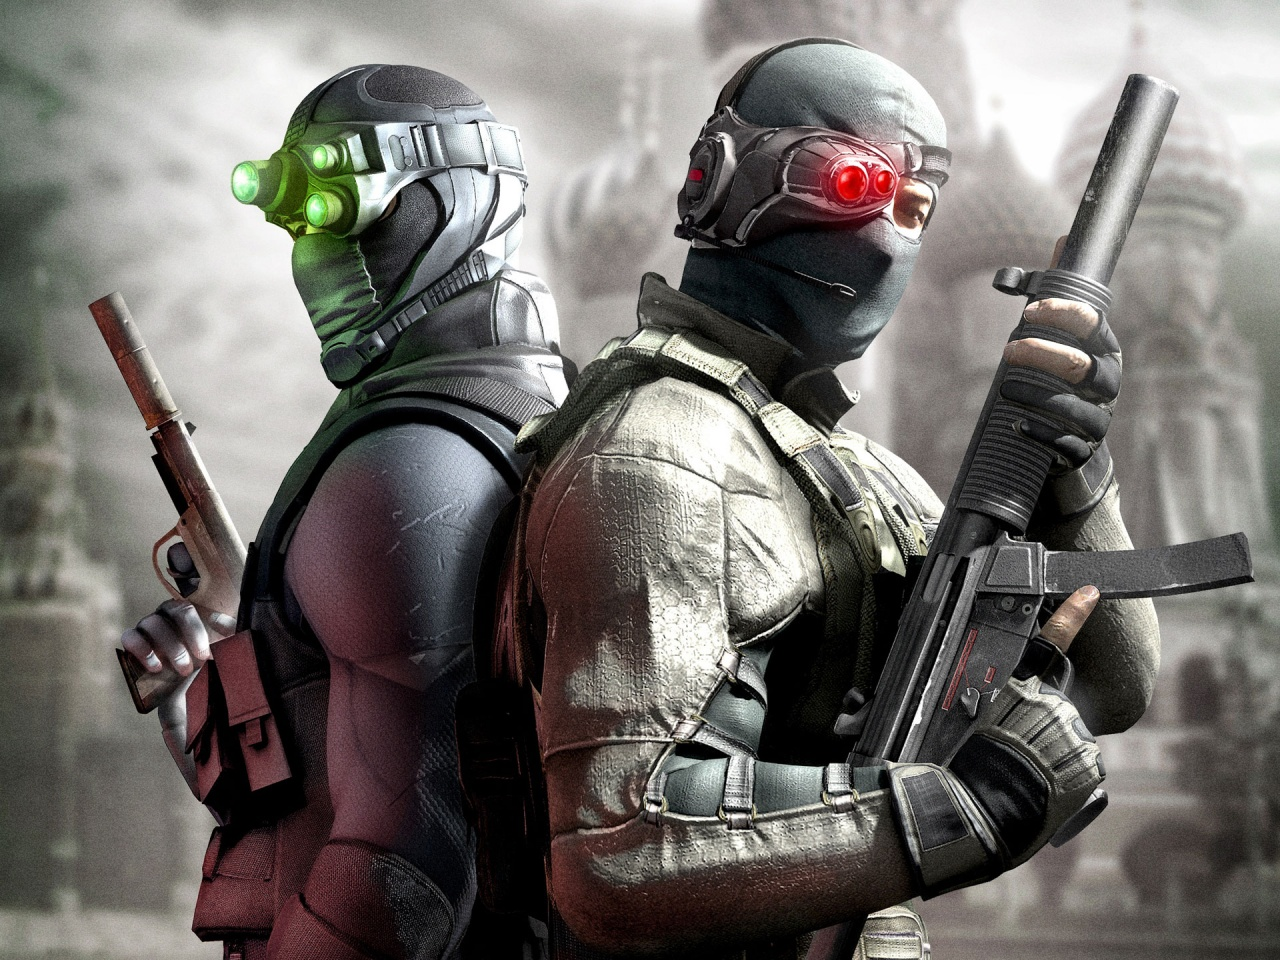 http://2.bp.blogspot.com/-JDClZep5Z_I/TZXlaen9oTI/AAAAAAAADSQ/aobcyFhGH9E/s1600/Tom_Clancys_Splinter_Cell_conviction_HD_Wallpapers_1.jpg